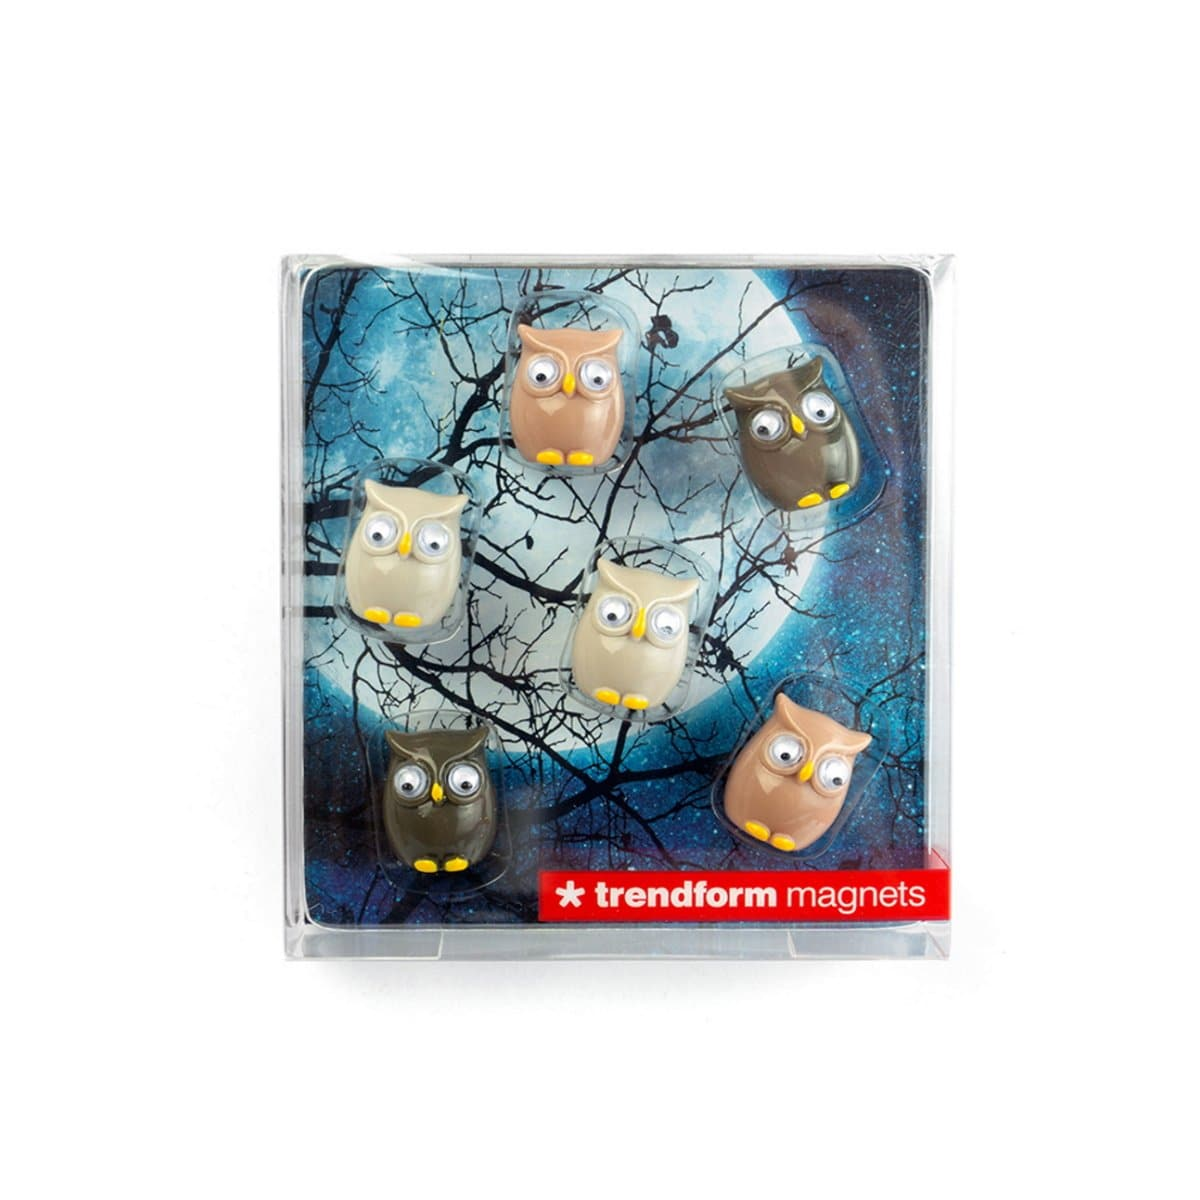 Trendform Magnets OWL, Set of 6